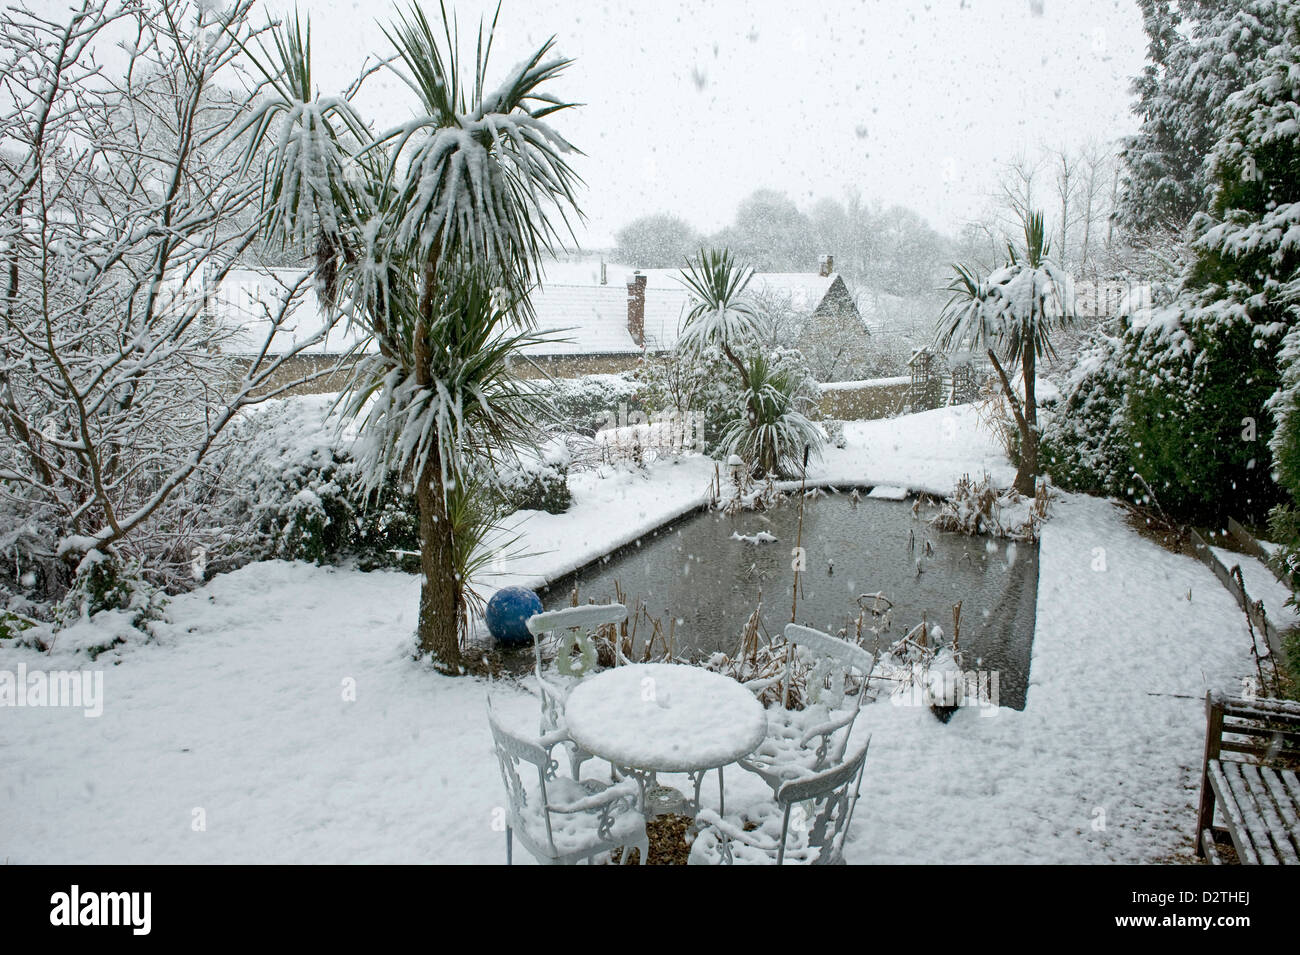 Garden pond, table, chairs & shrubs in a heavy snow storm, Devon, - Stock Image